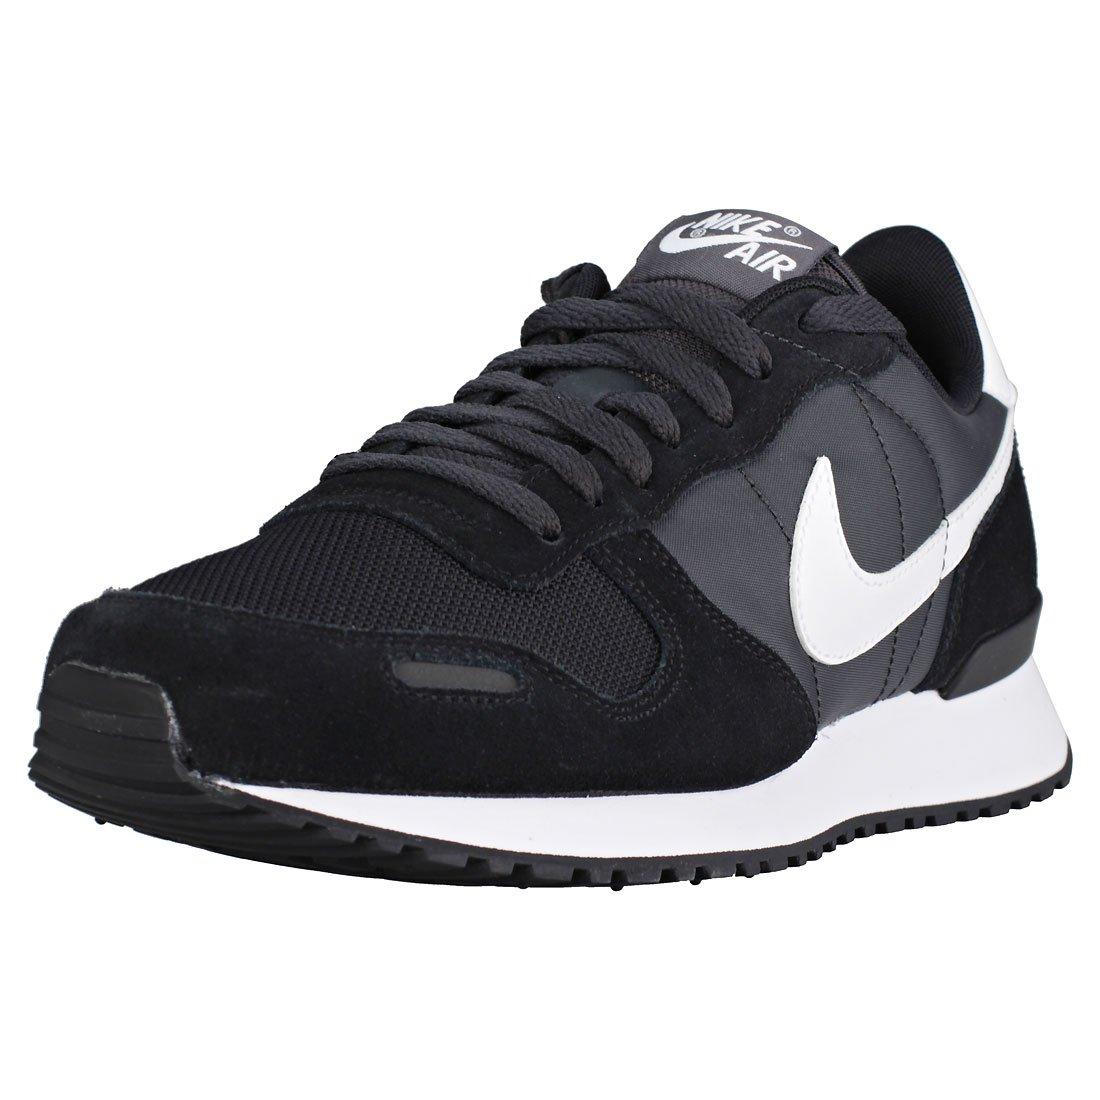 NIKE Men's Air VRTX, Black/White-Anthracite B07BQ97CHY 9.5 D(M) US|Black/White-anthracite